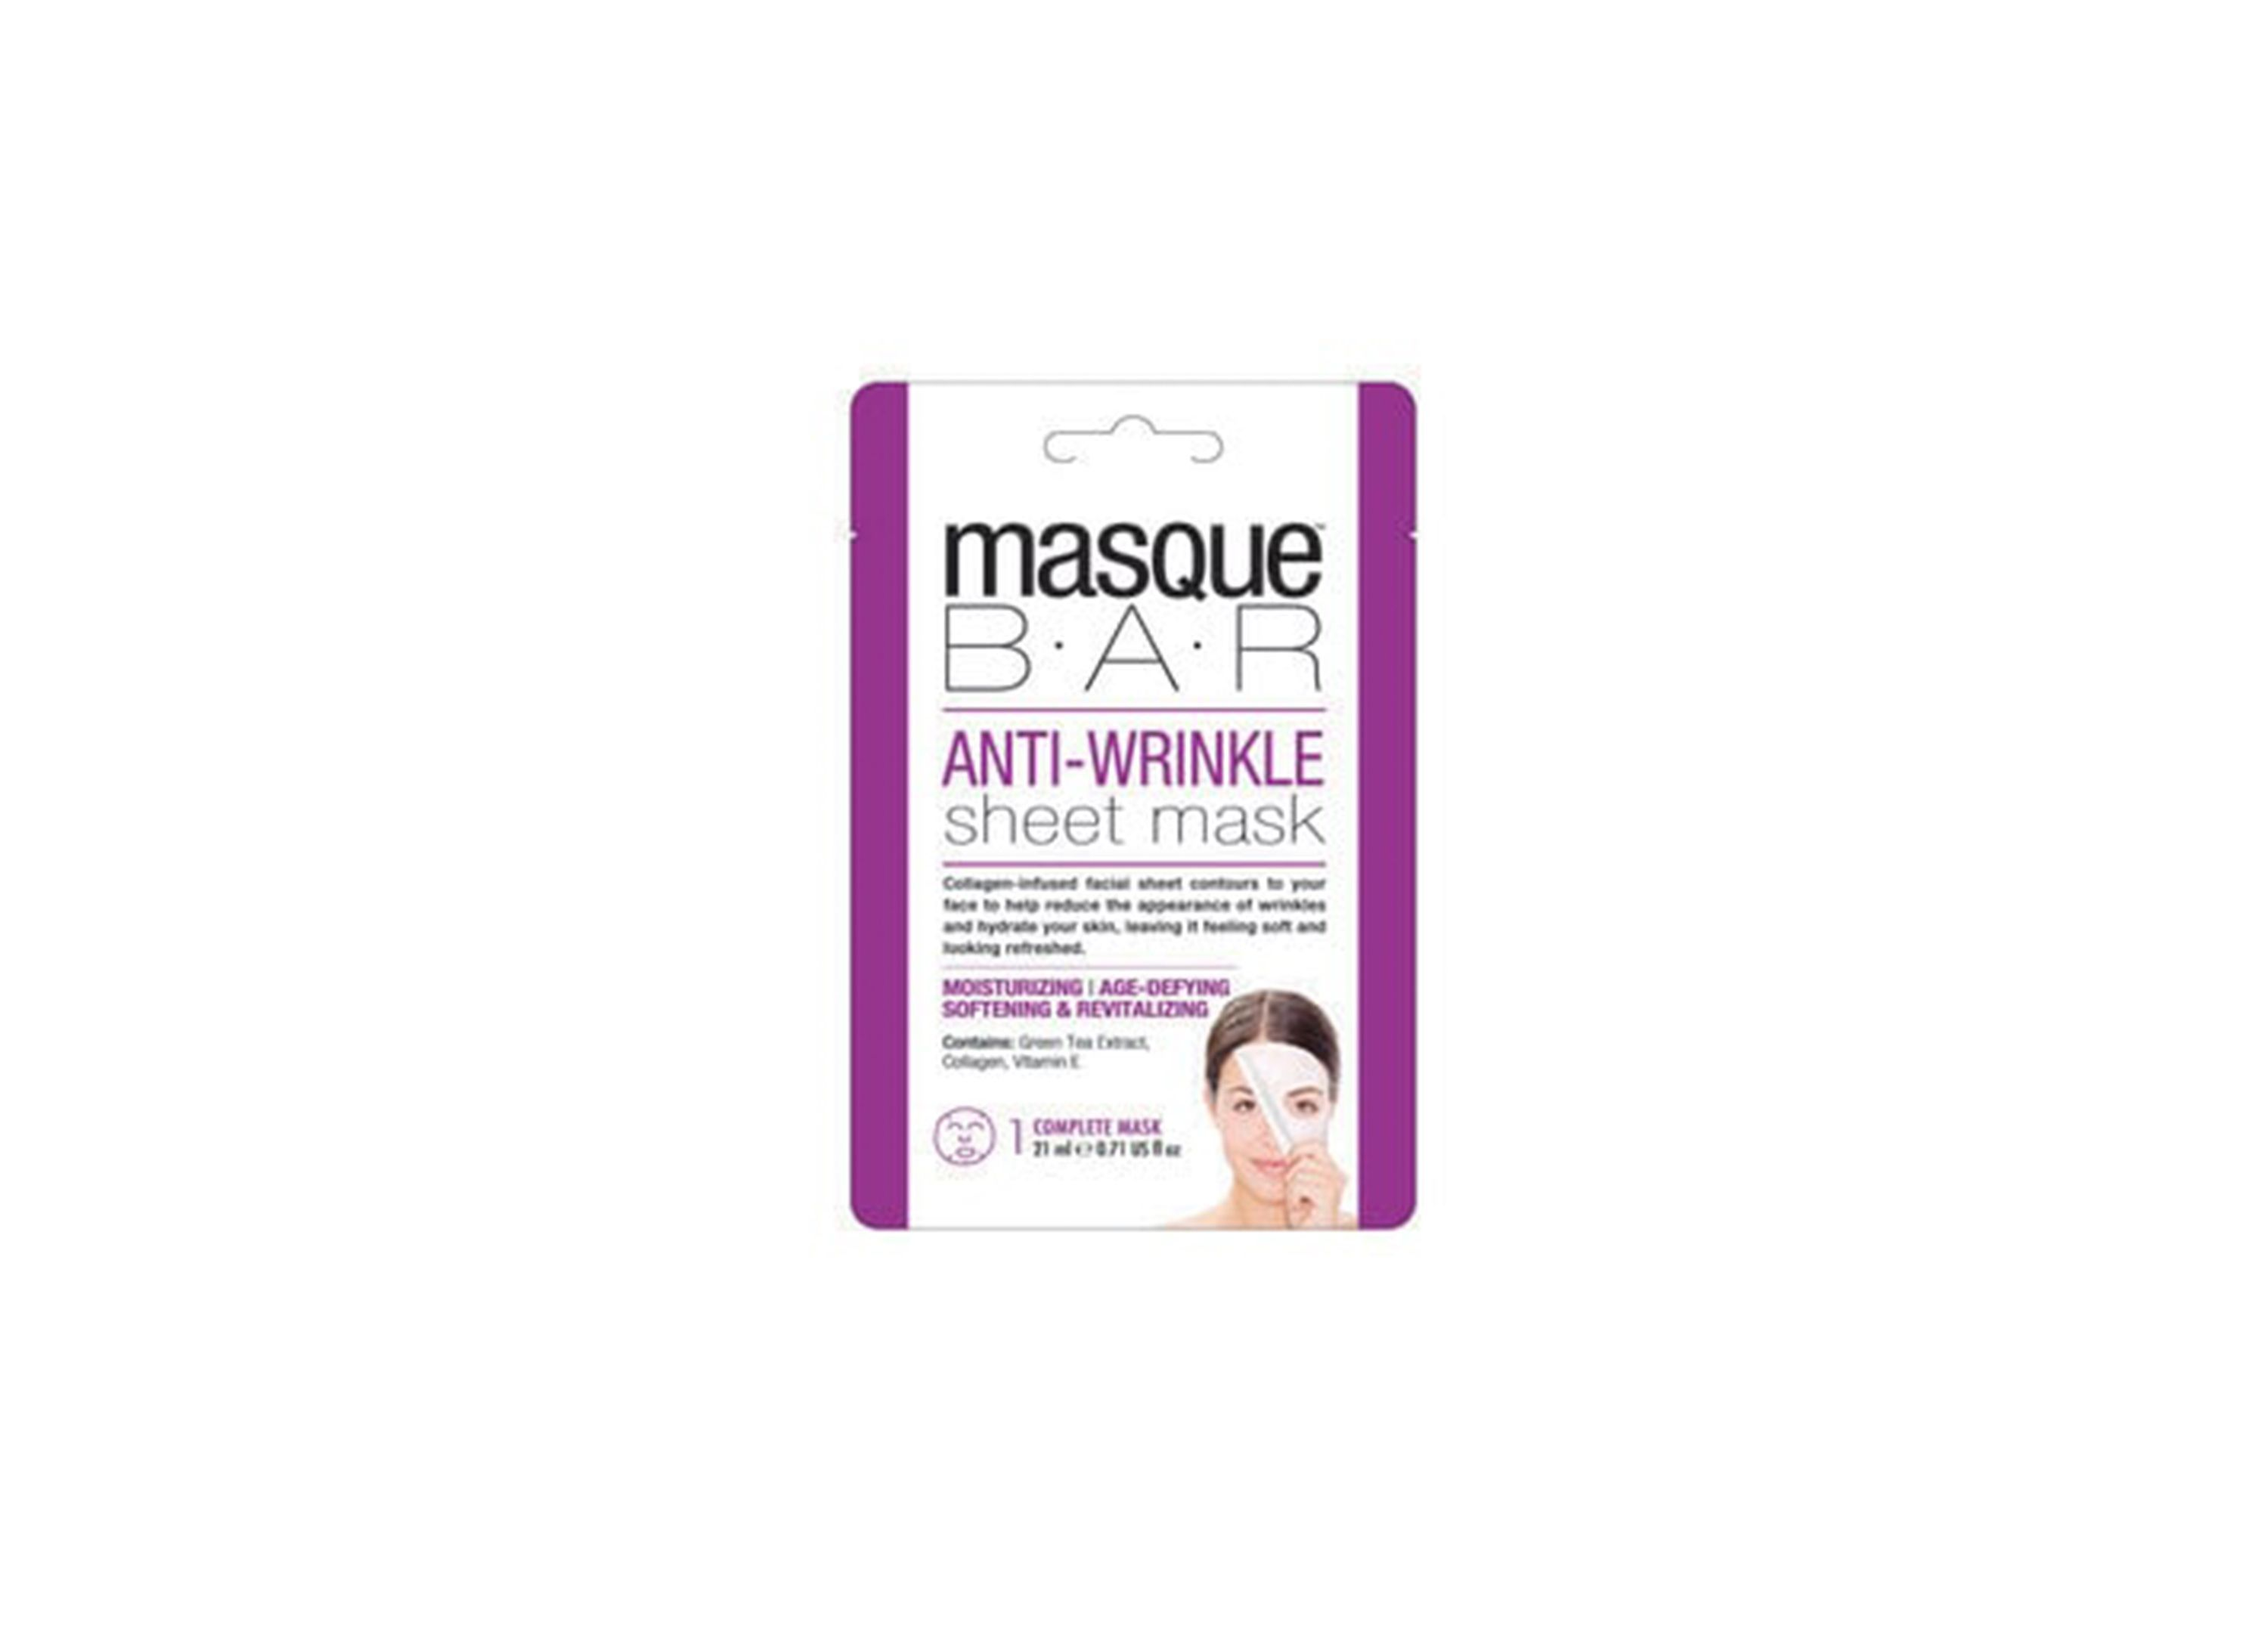 Best for Anti-Aging: Masque Bar Wrinkle-Reducing Sheet Mask